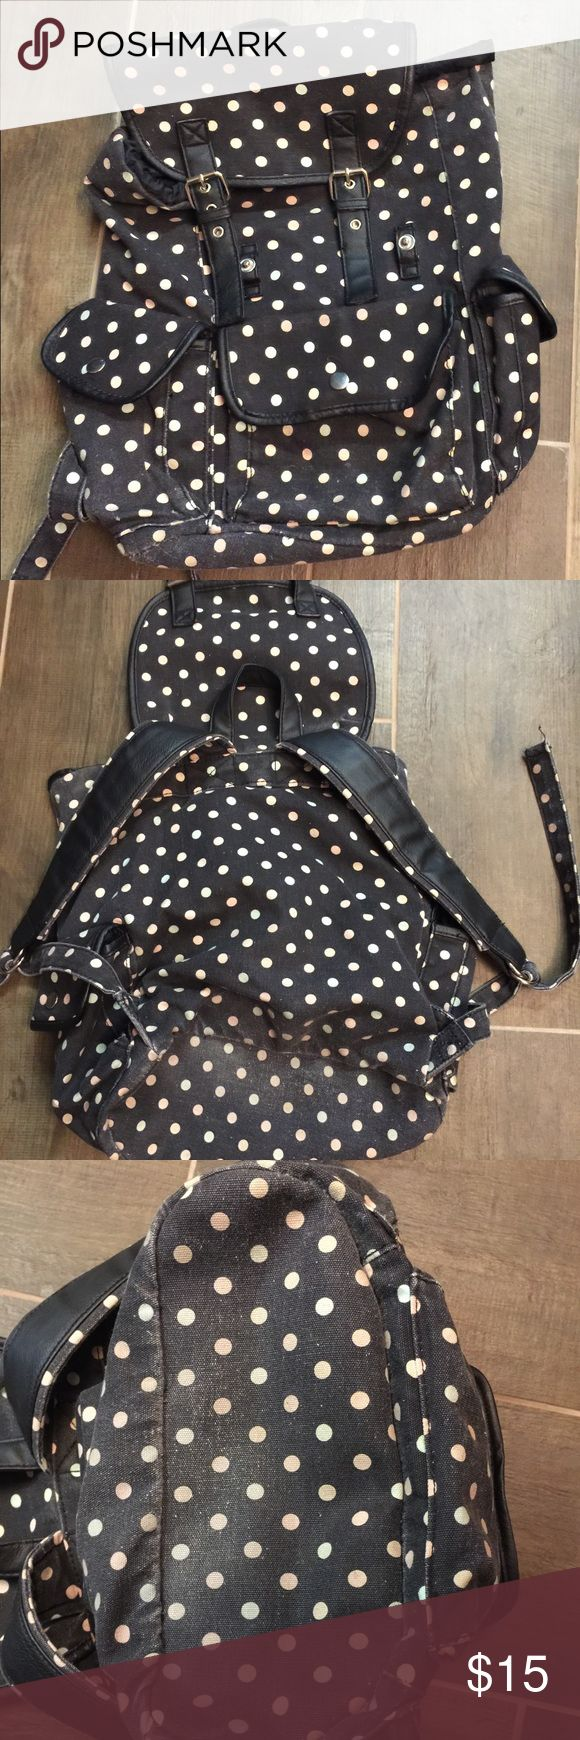 Candies polka dot canvas backpack. Candies polka dot canvas backpack. This is a great canvas backpack. It does show normal wear and fading to the bottom as shown in pictures but overall good shape. Please view all pictures. Candie's Bags Backpacks